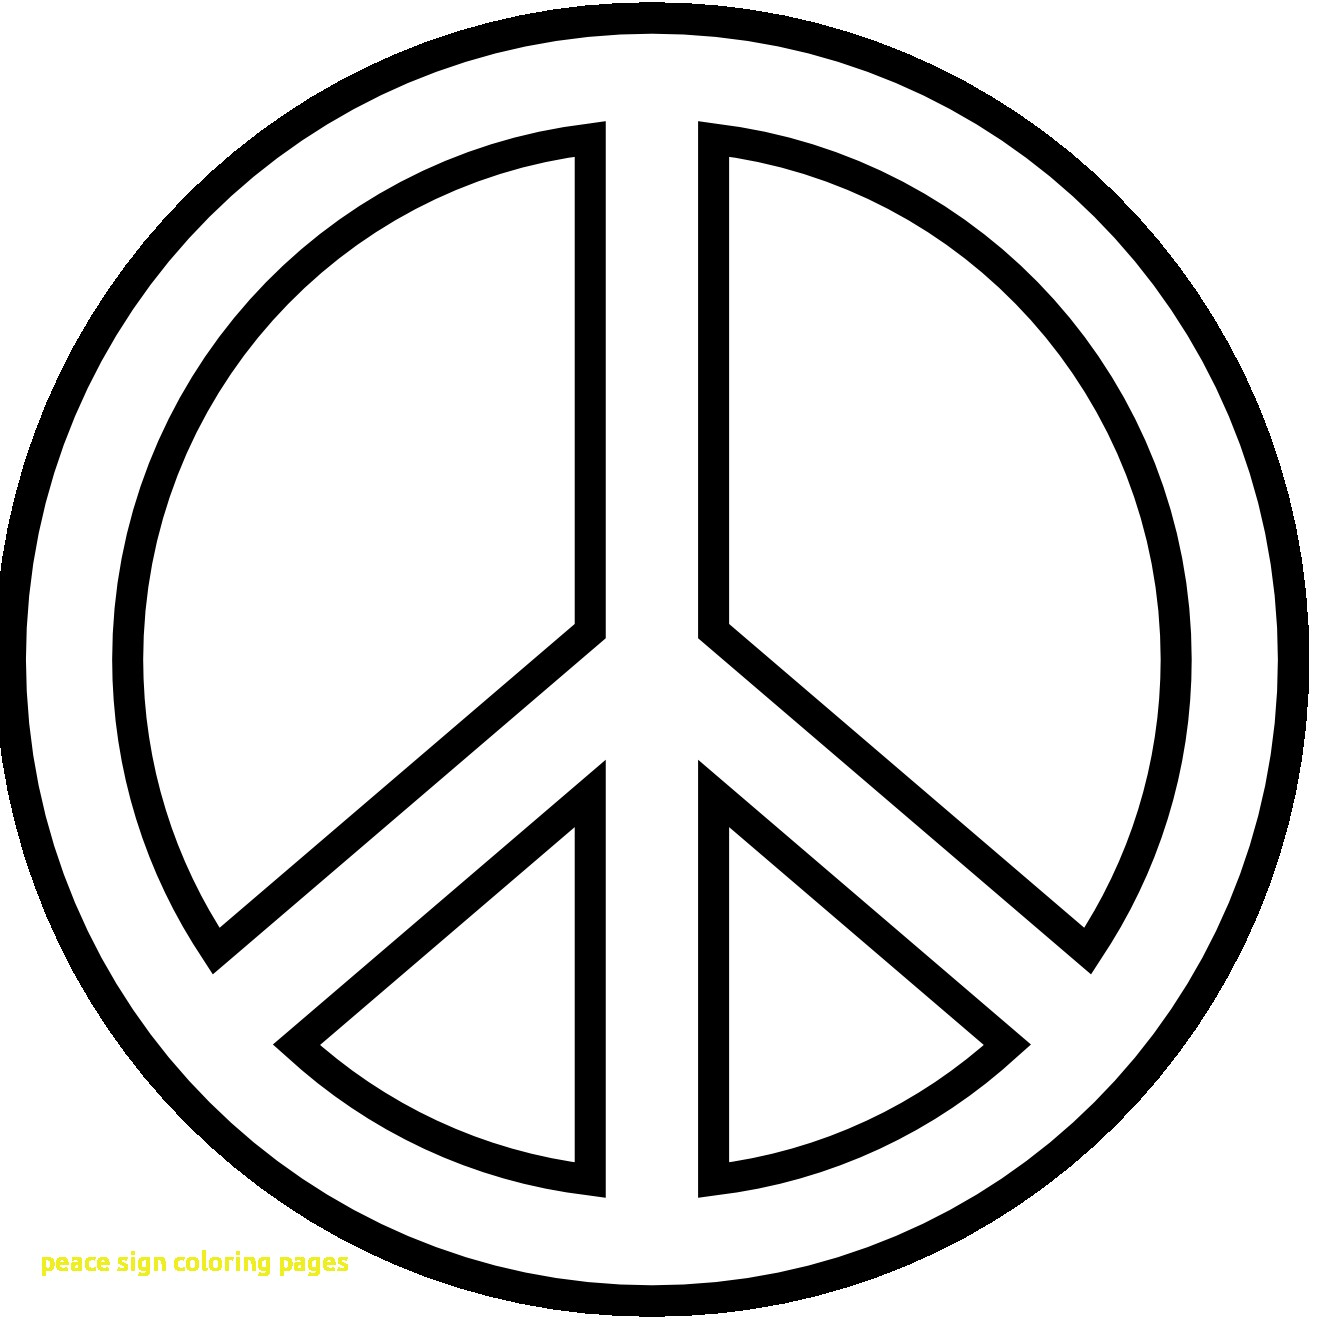 1331x1319 Peace Sign Coloring Pages With Peace Signs Coloring Pages Page 1